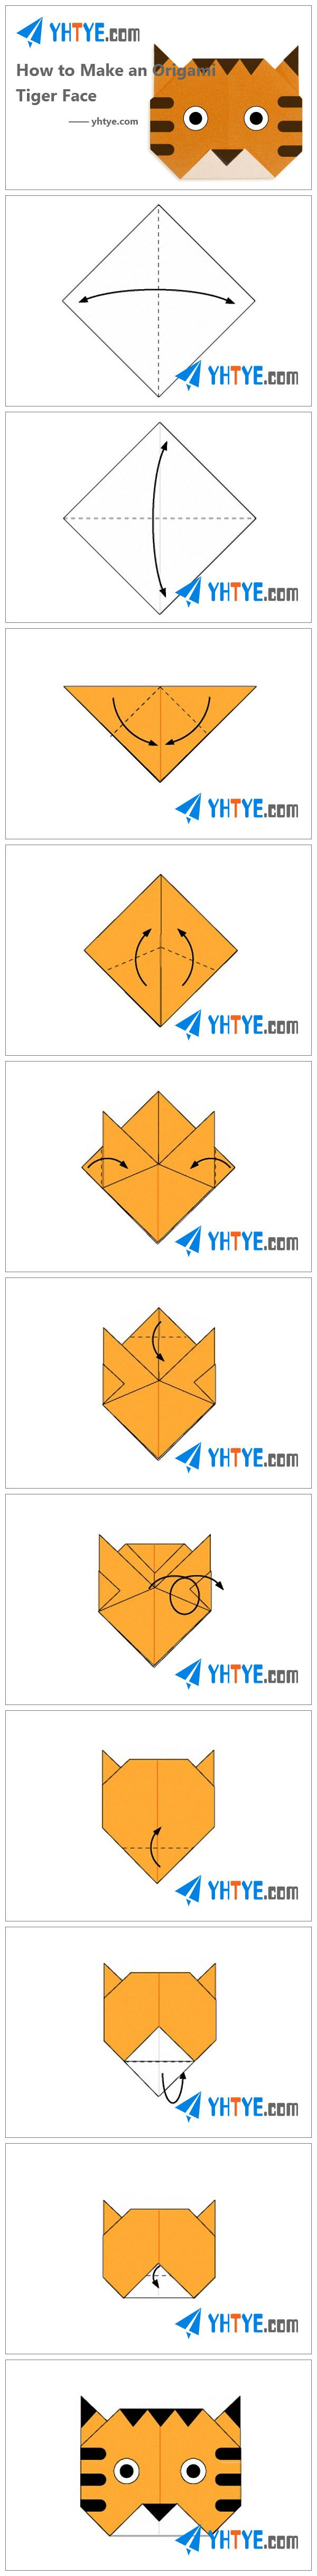 How to Make an Origami Tiger Face